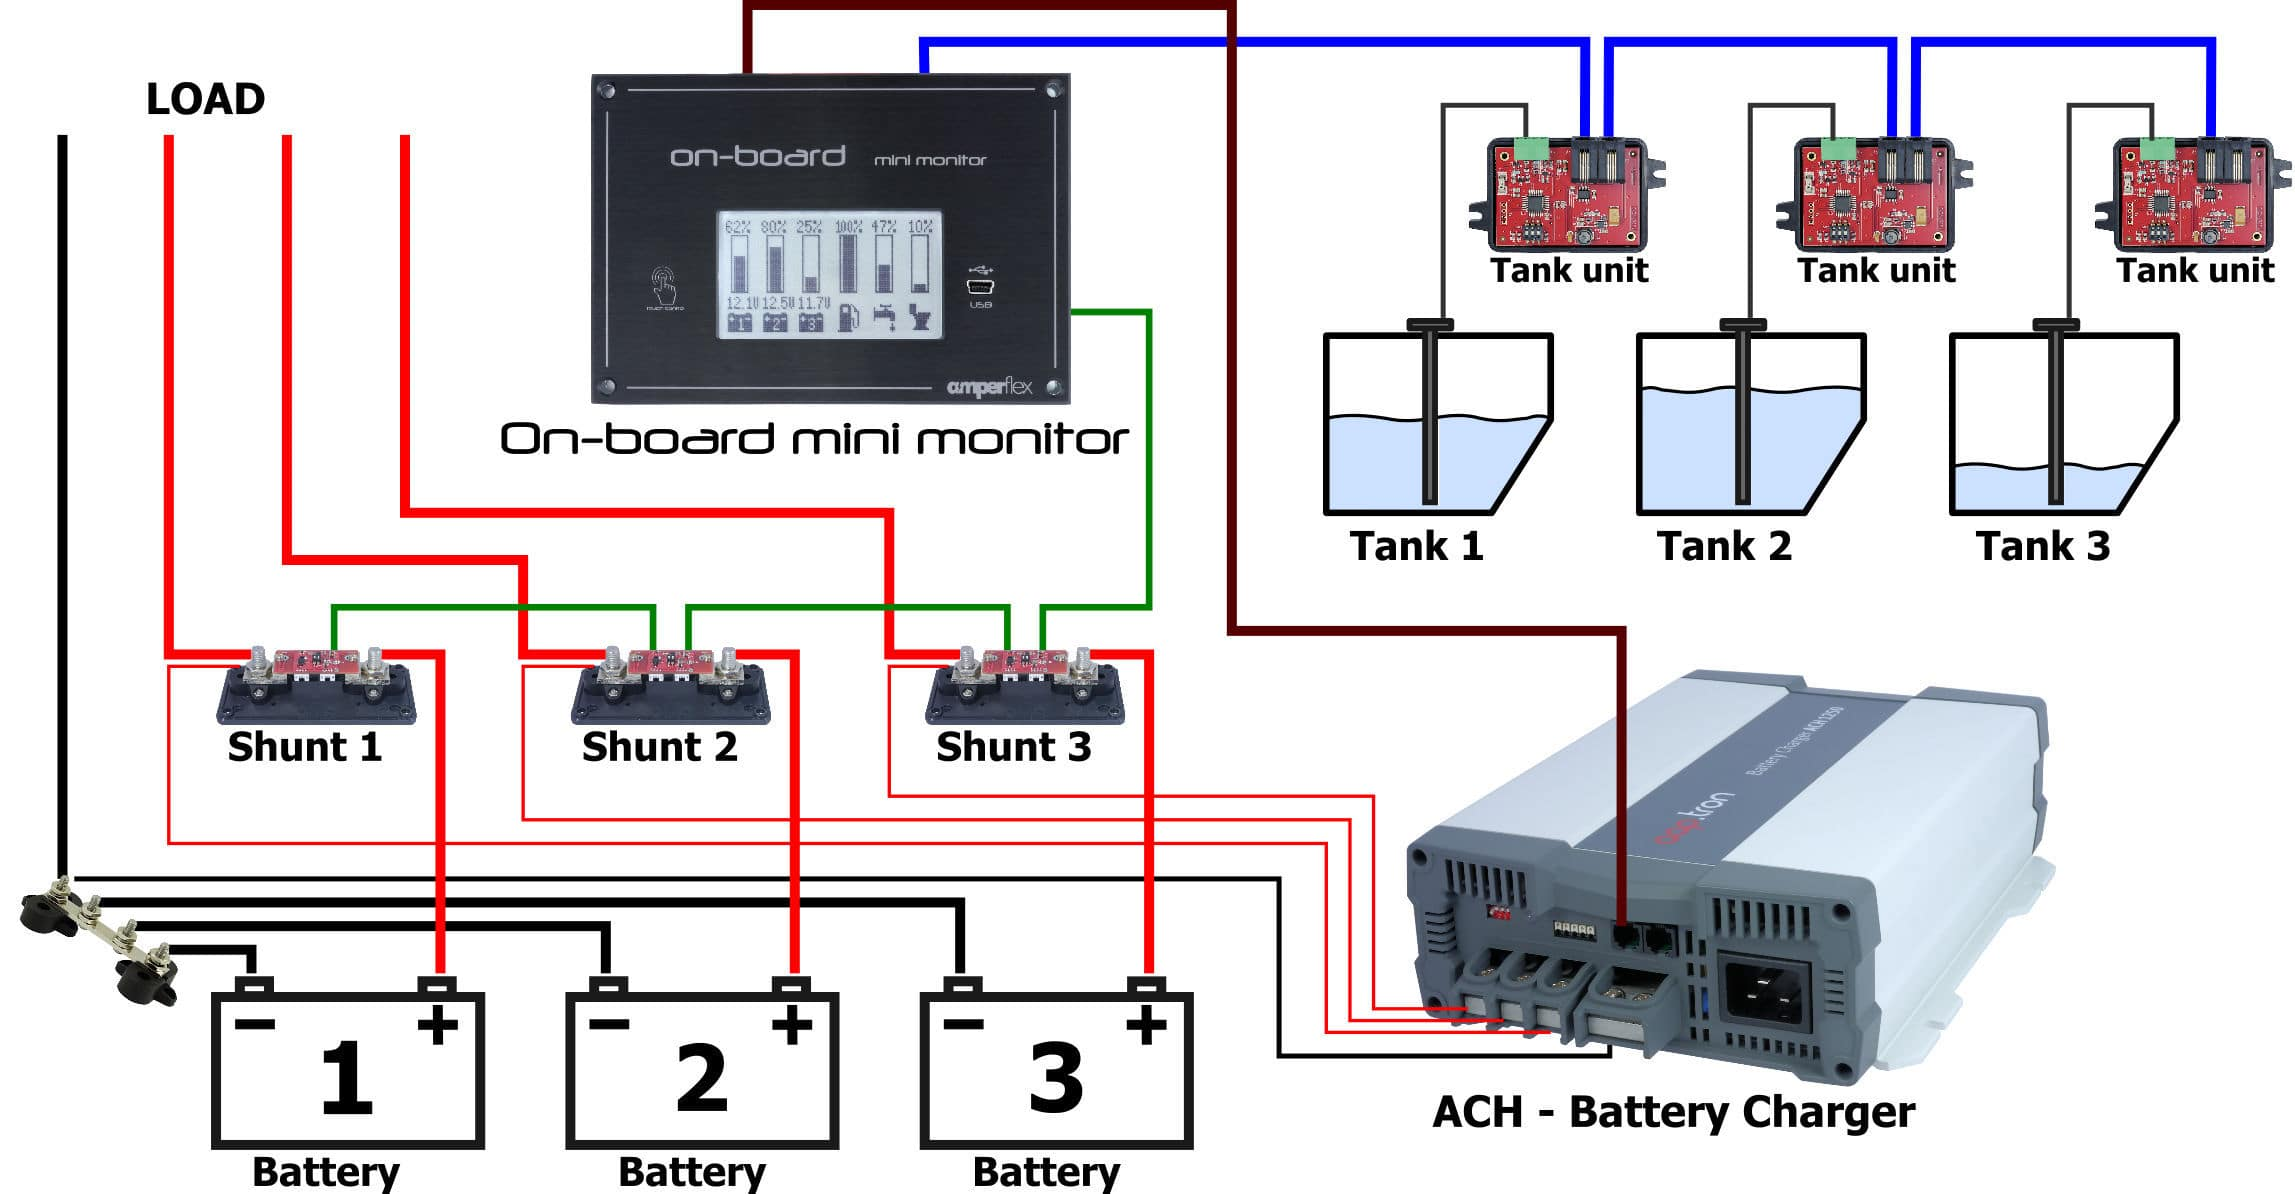 Boat Monitoring Panel For Yachts Battery Tanks On Board Onboard Charger Wiring Diagram